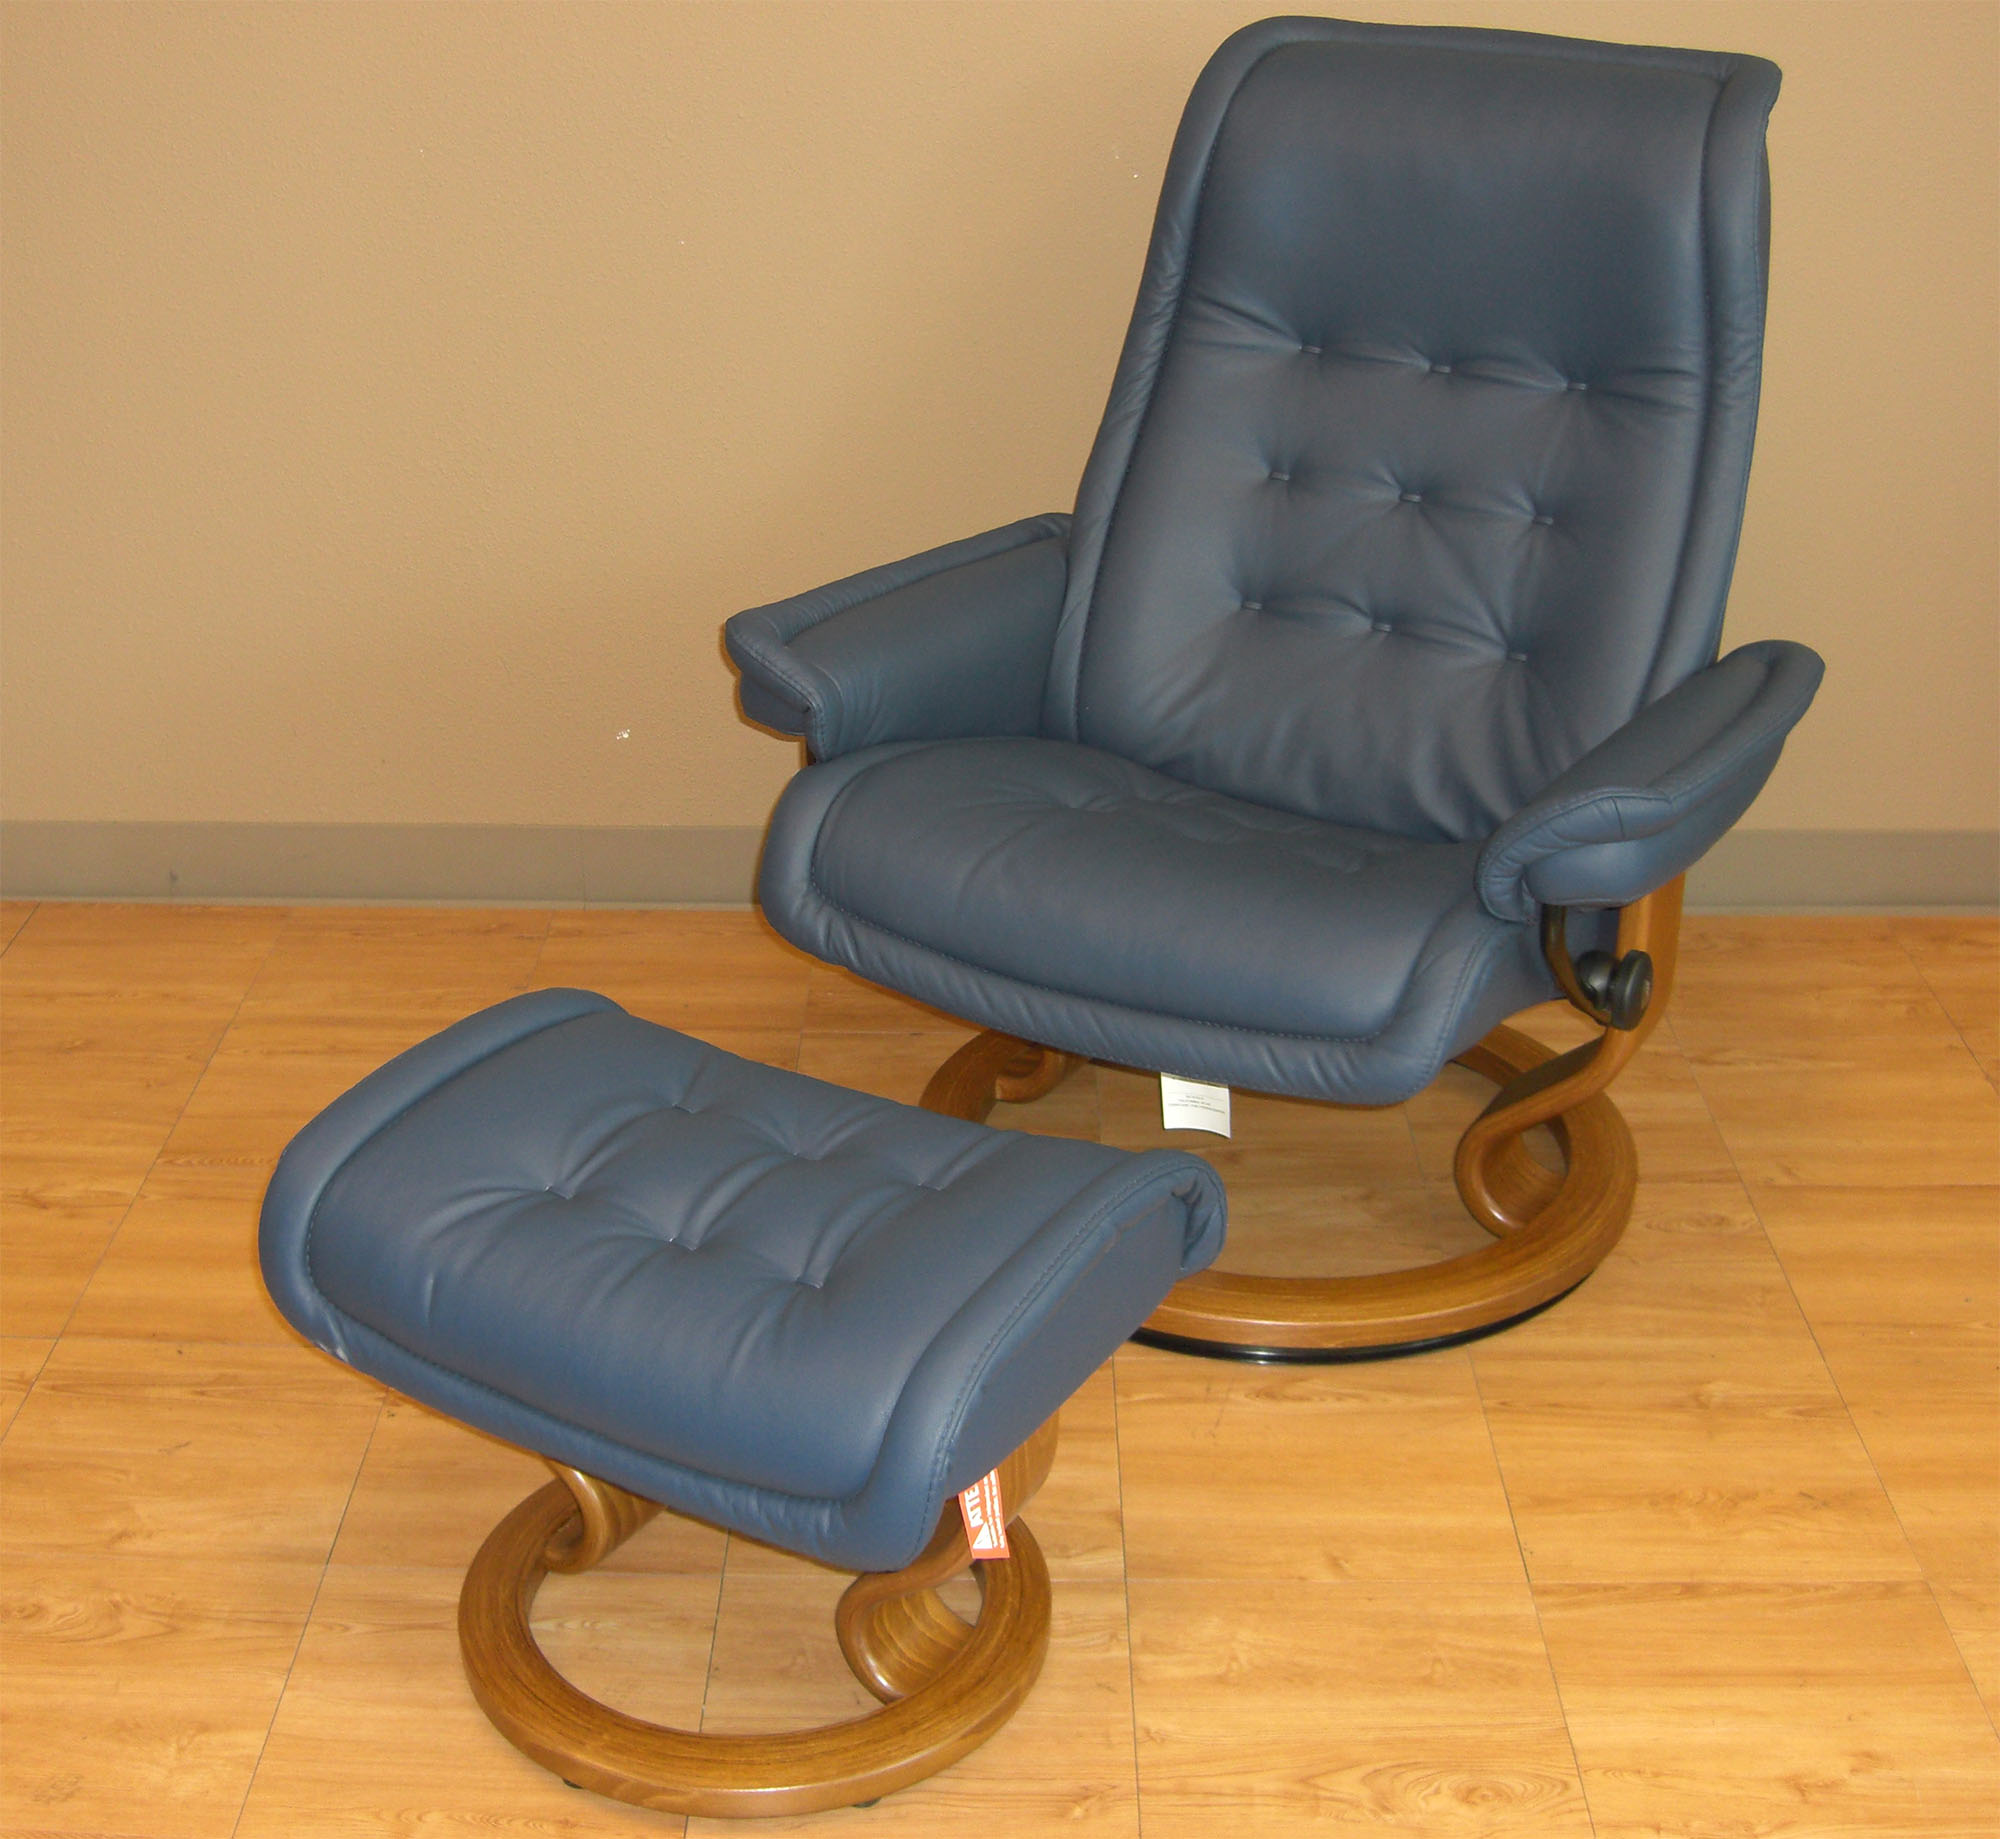 Stressless Royal Paloma Oxford Blue Leather Chair & Ekornes Stressless Royal Recliner Chair Lounger - Ekornes ... islam-shia.org